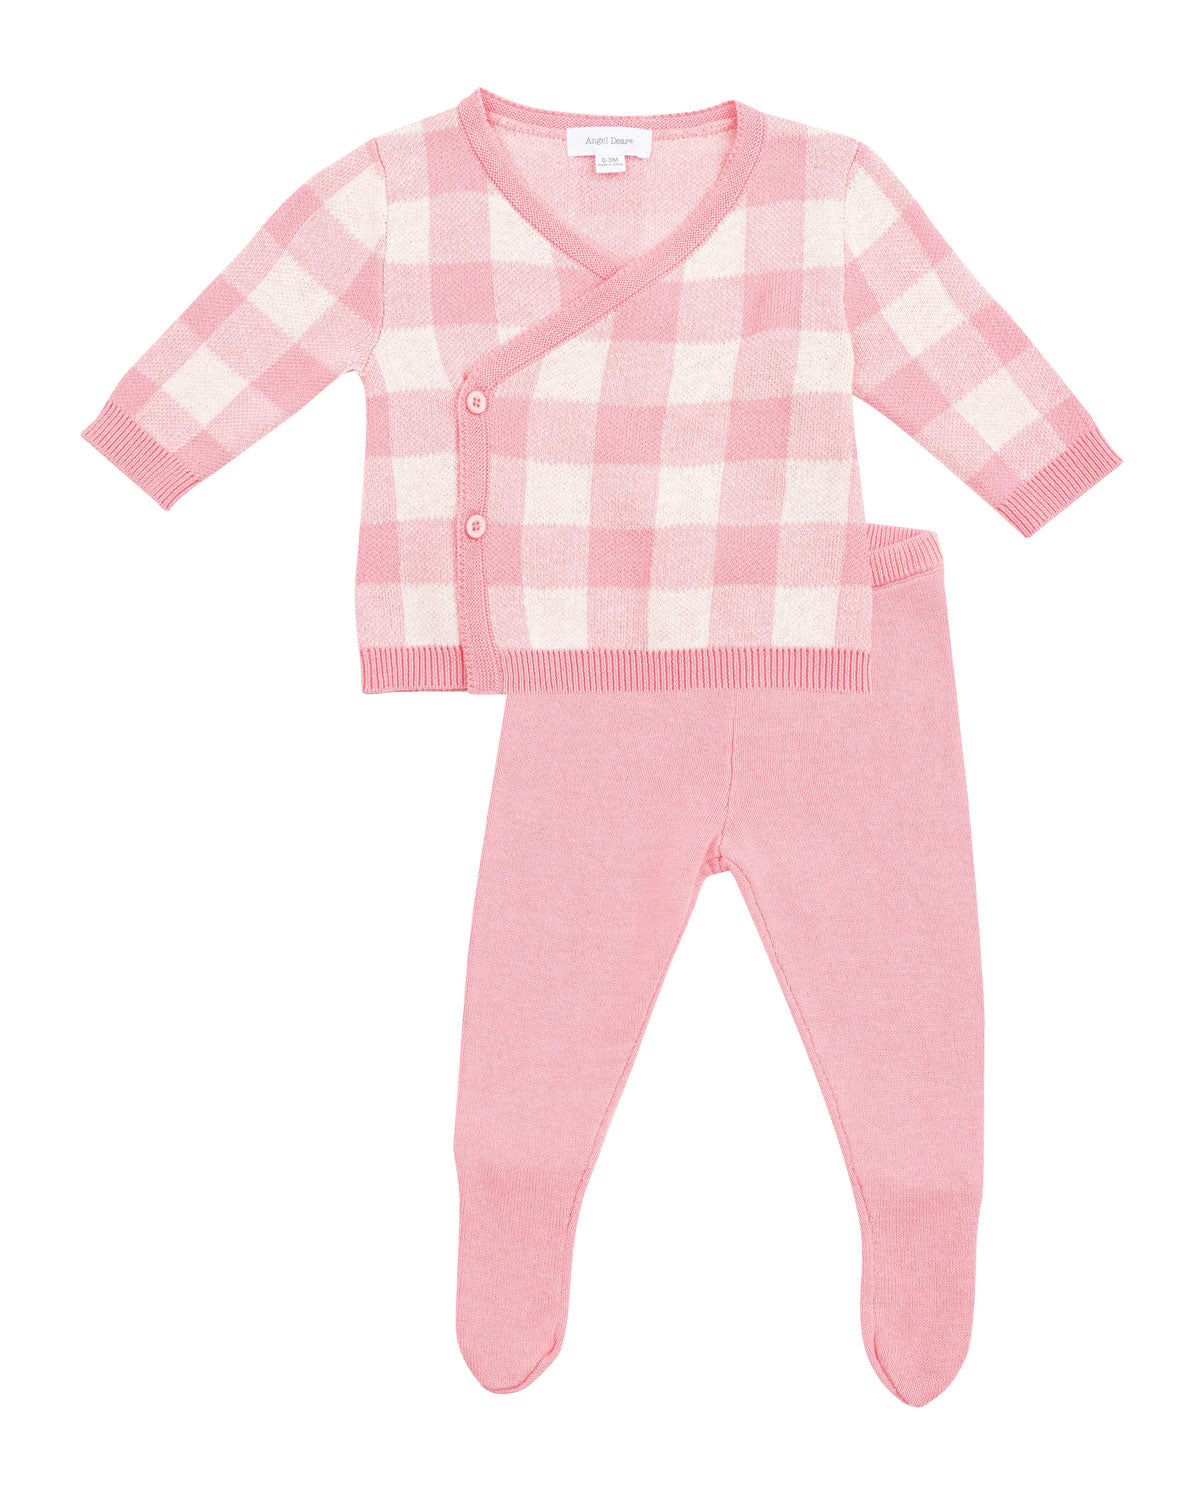 Knit Take Me Home 3 Piece Set in Pink Gingham